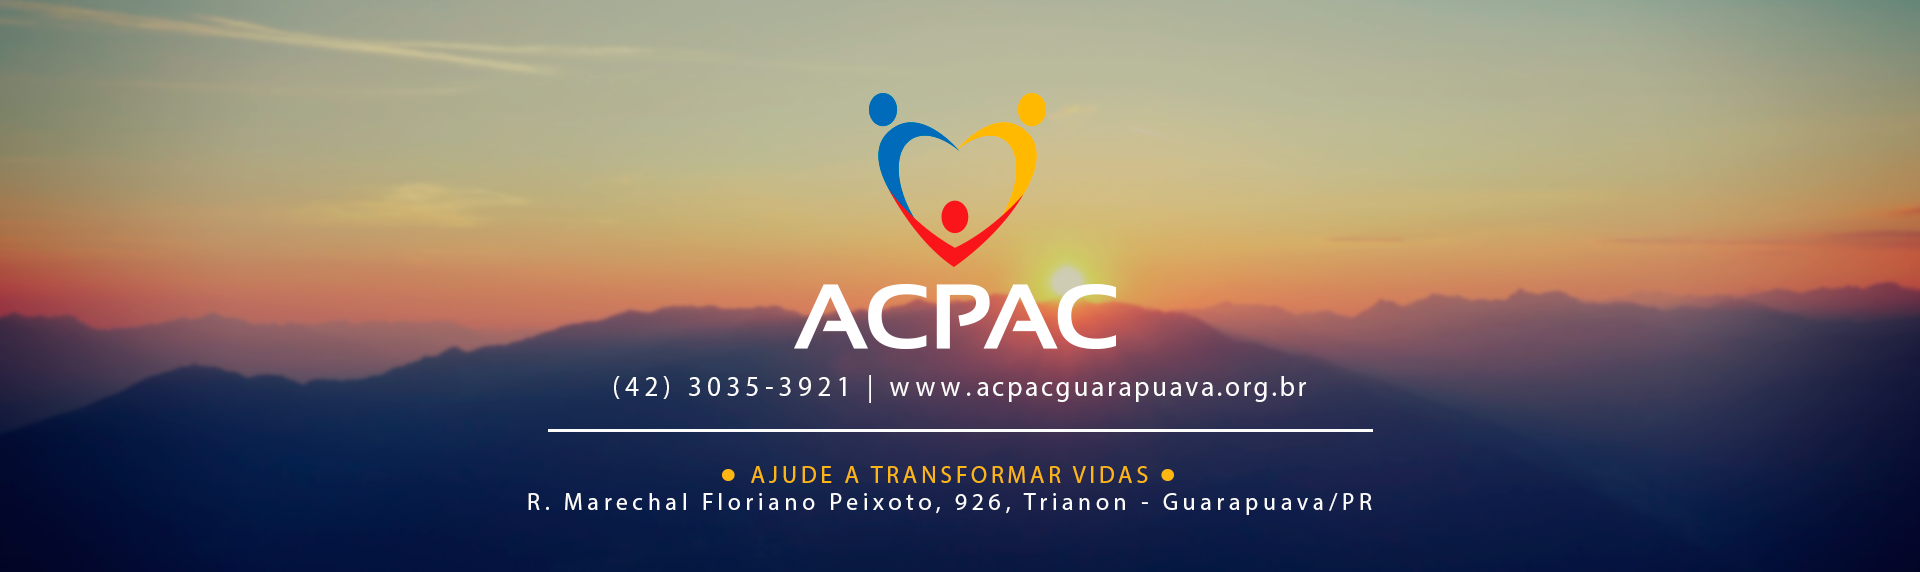 acpac-banner.png